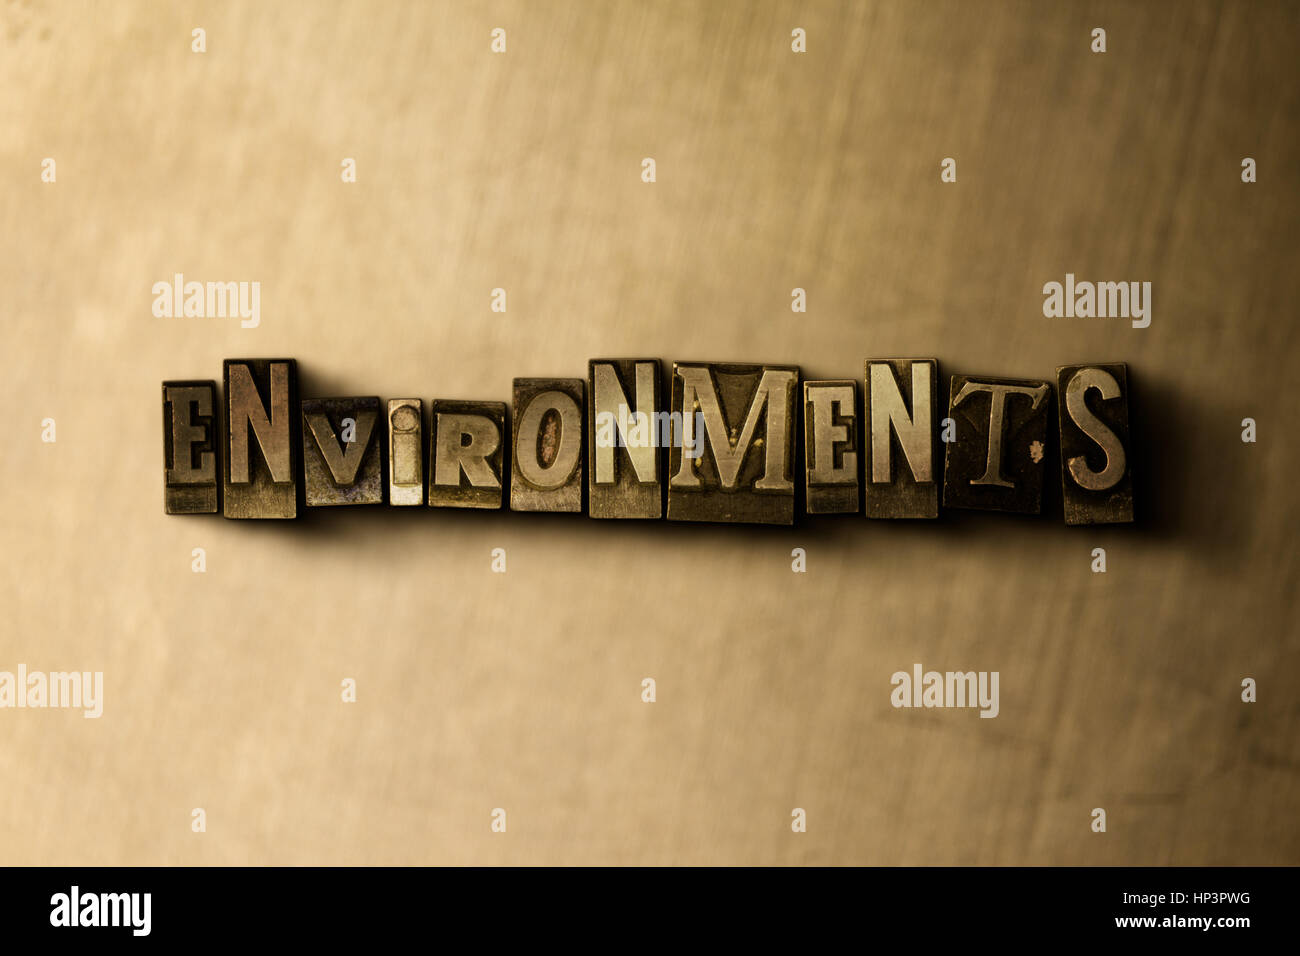 ENVIRONMENTS - close-up of grungy vintage typeset word on metal backdrop. Royalty free stock illustration.  Can - Stock Image